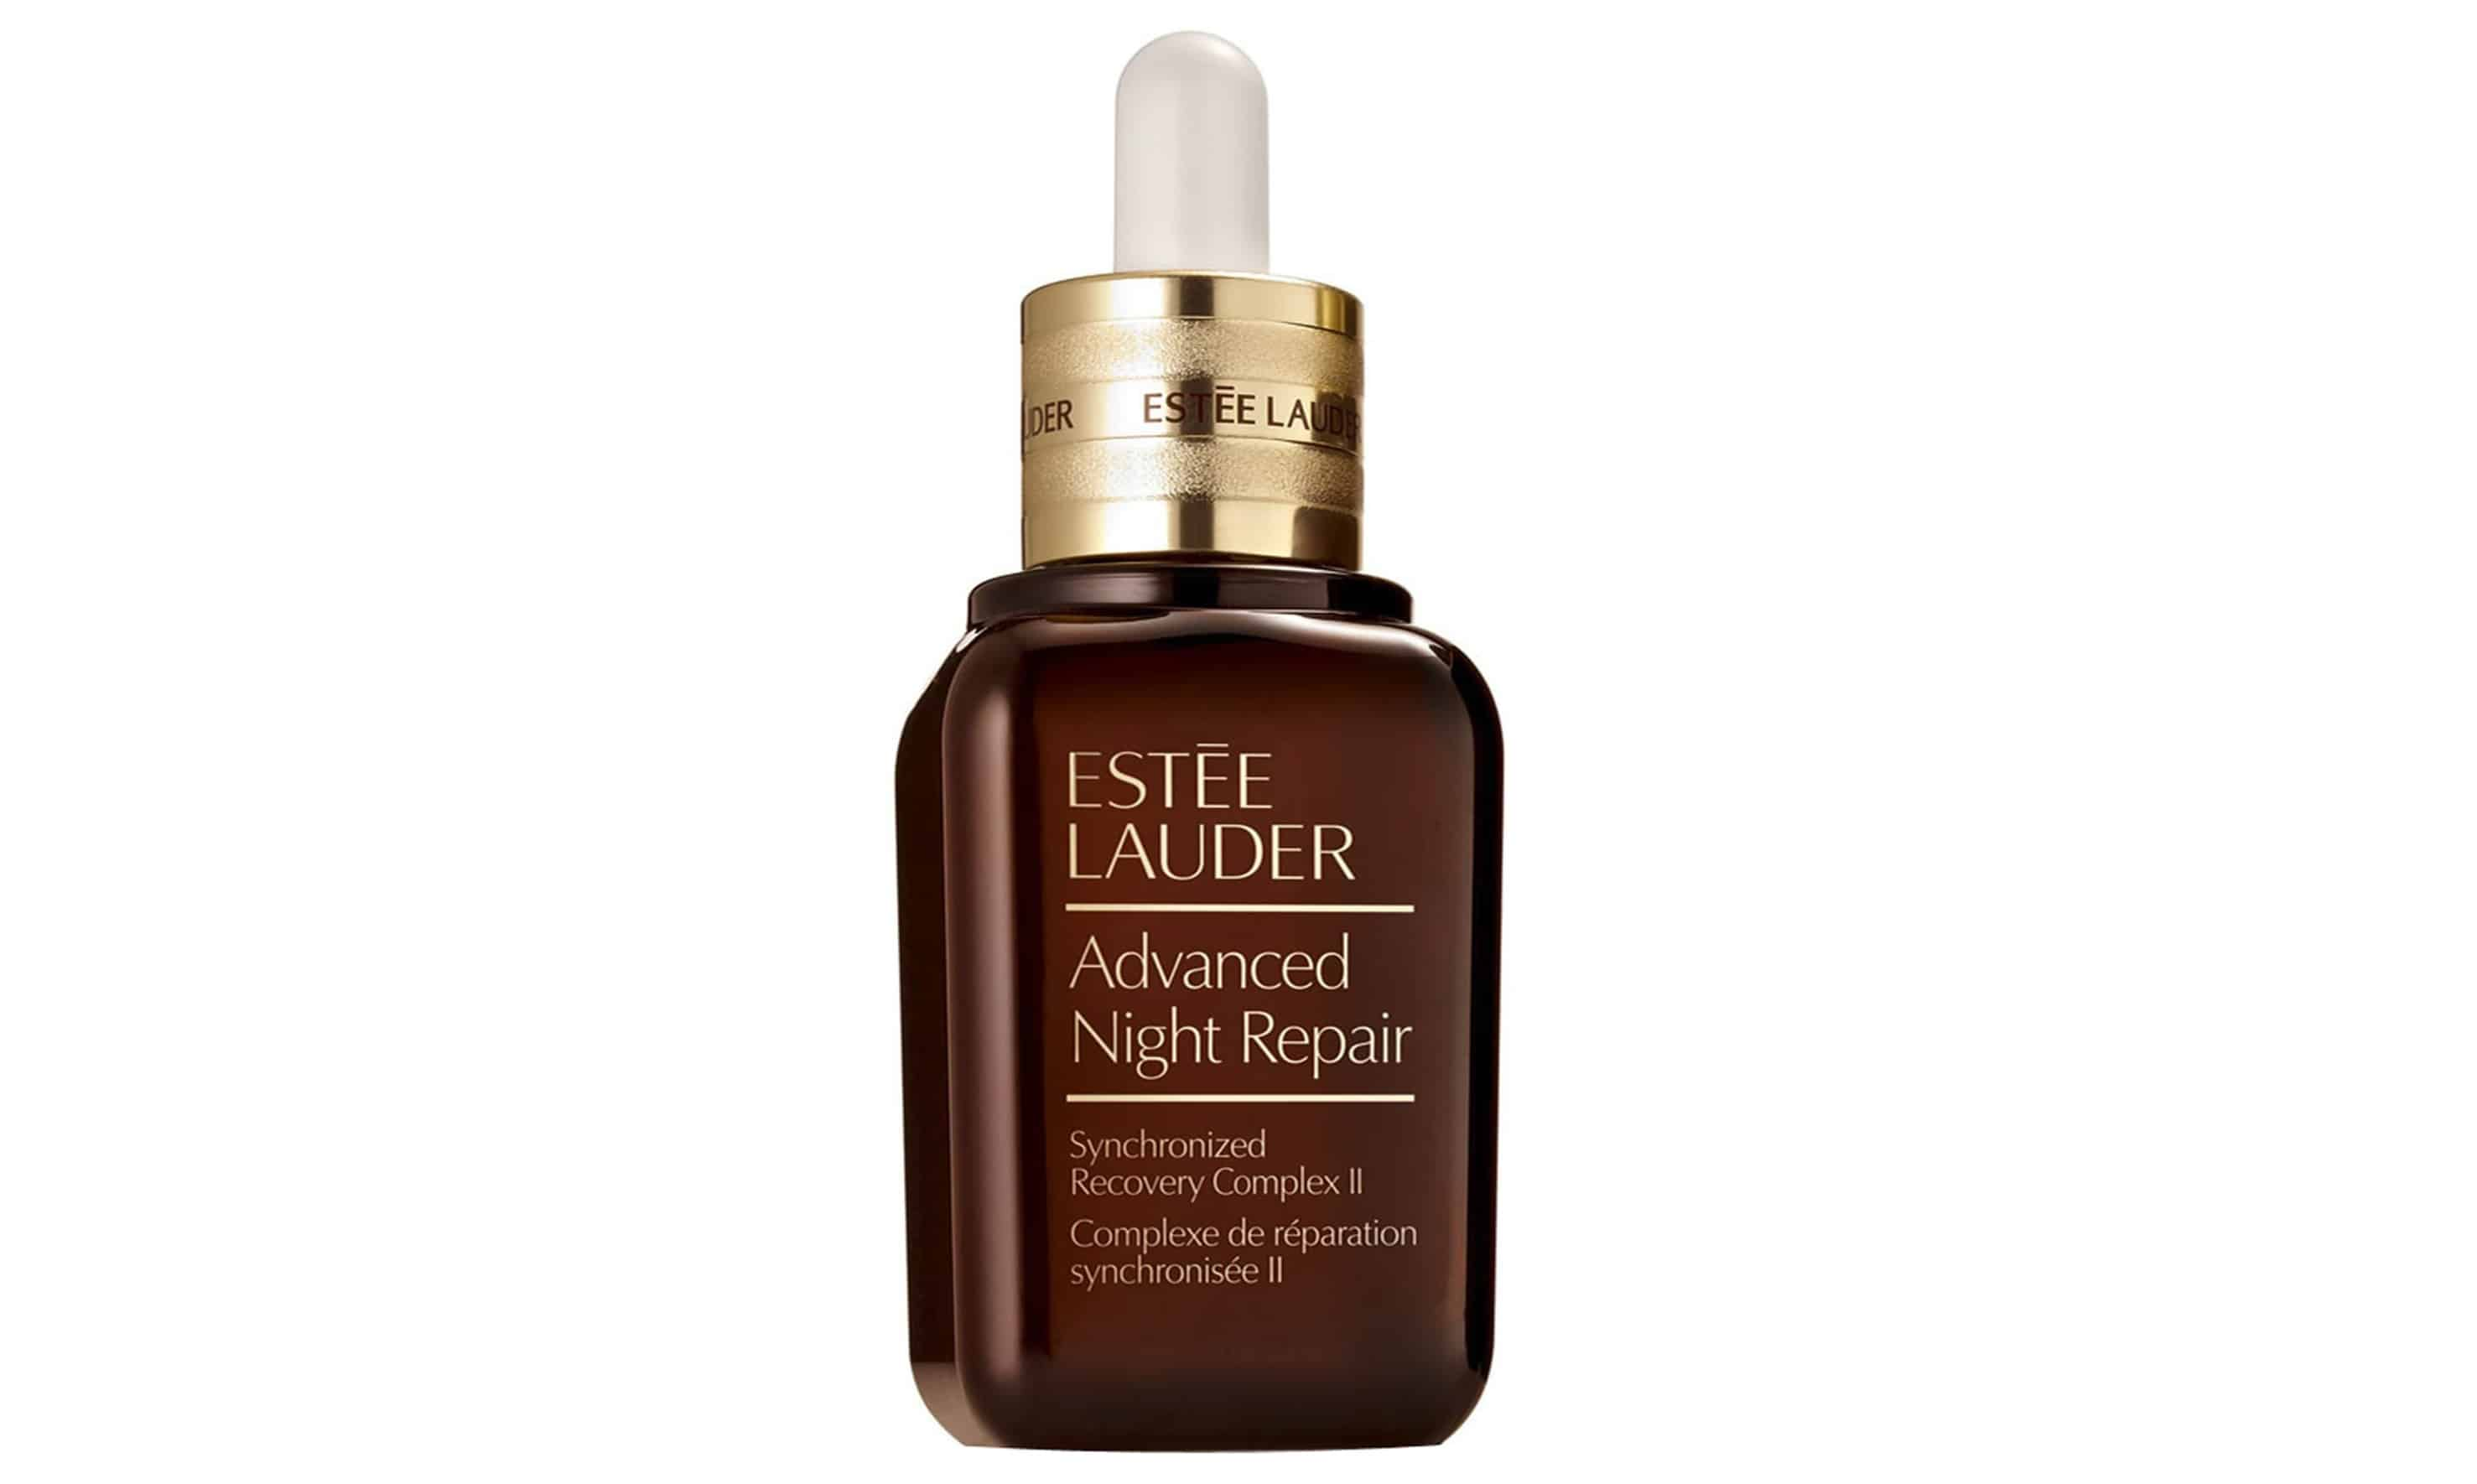 Advanced Night Repair Serum by Estee Lauder